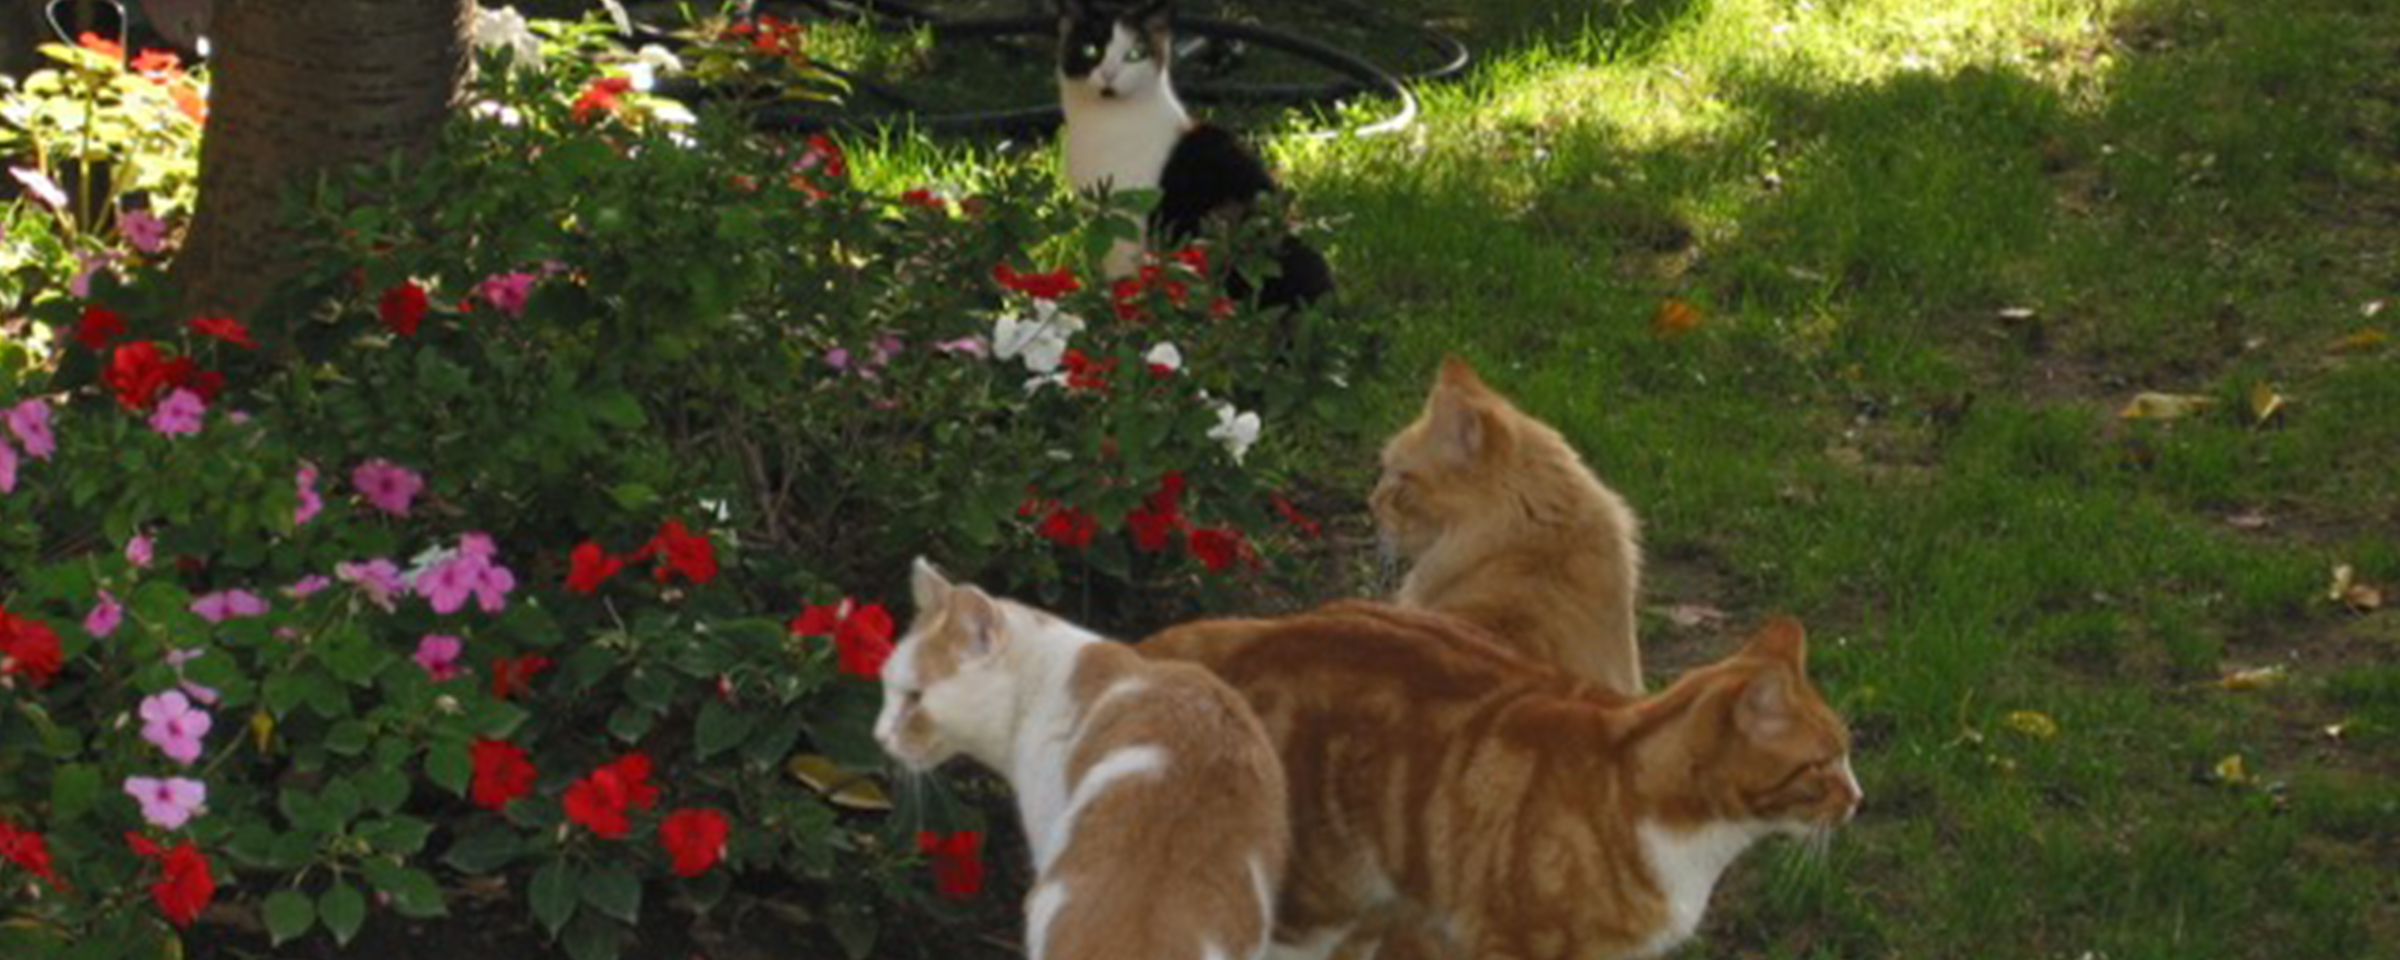 Outdoor Cats in Our Community - CPAW NJ